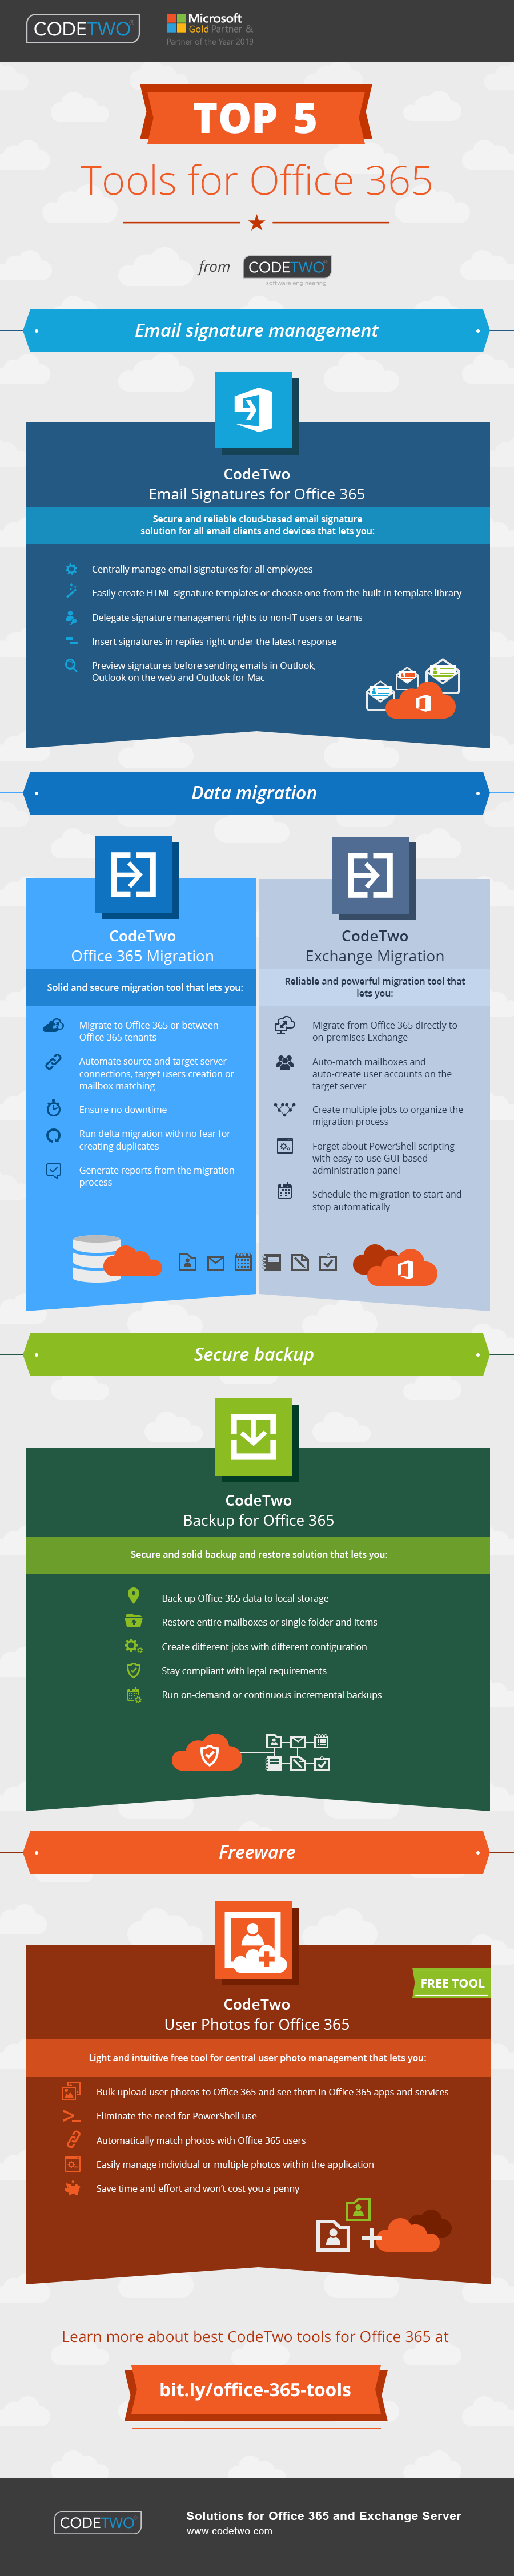 Top 5 tools for Office 365 from CodeTwo | Infographic